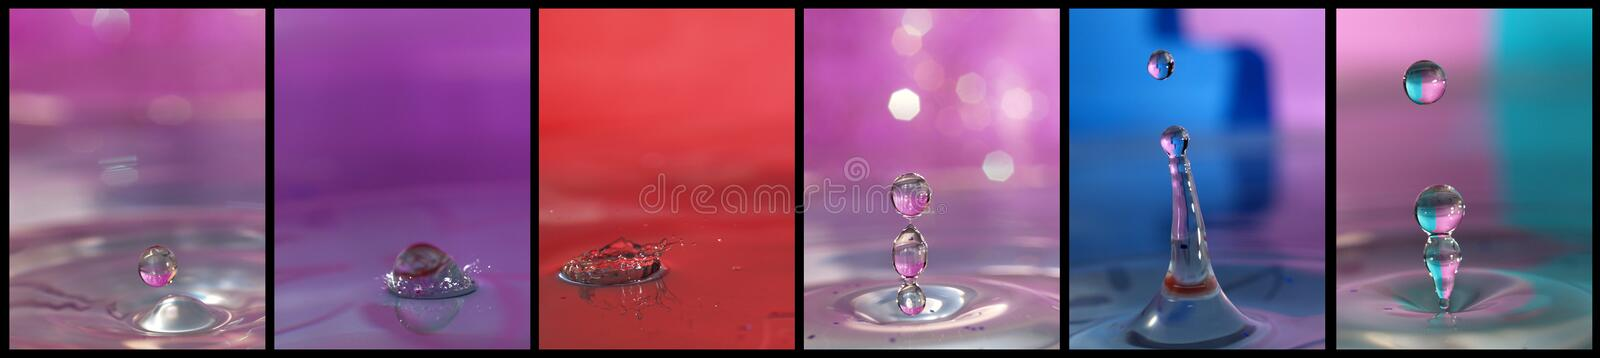 water drop story stock images